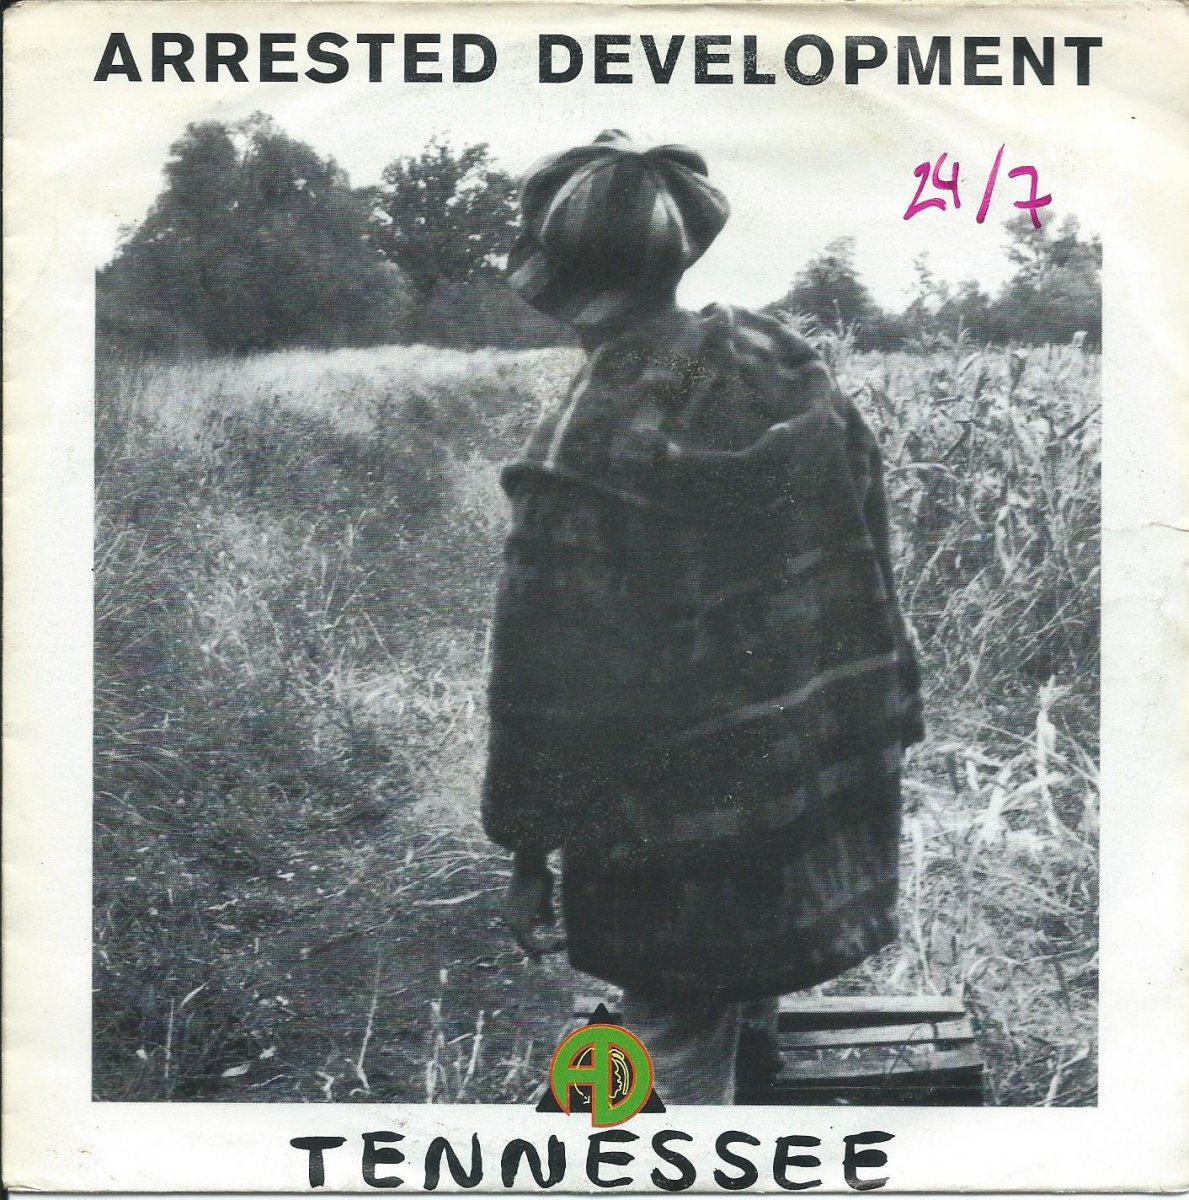 ARRESTED DEVELOPMENT / TENNESSEE (7